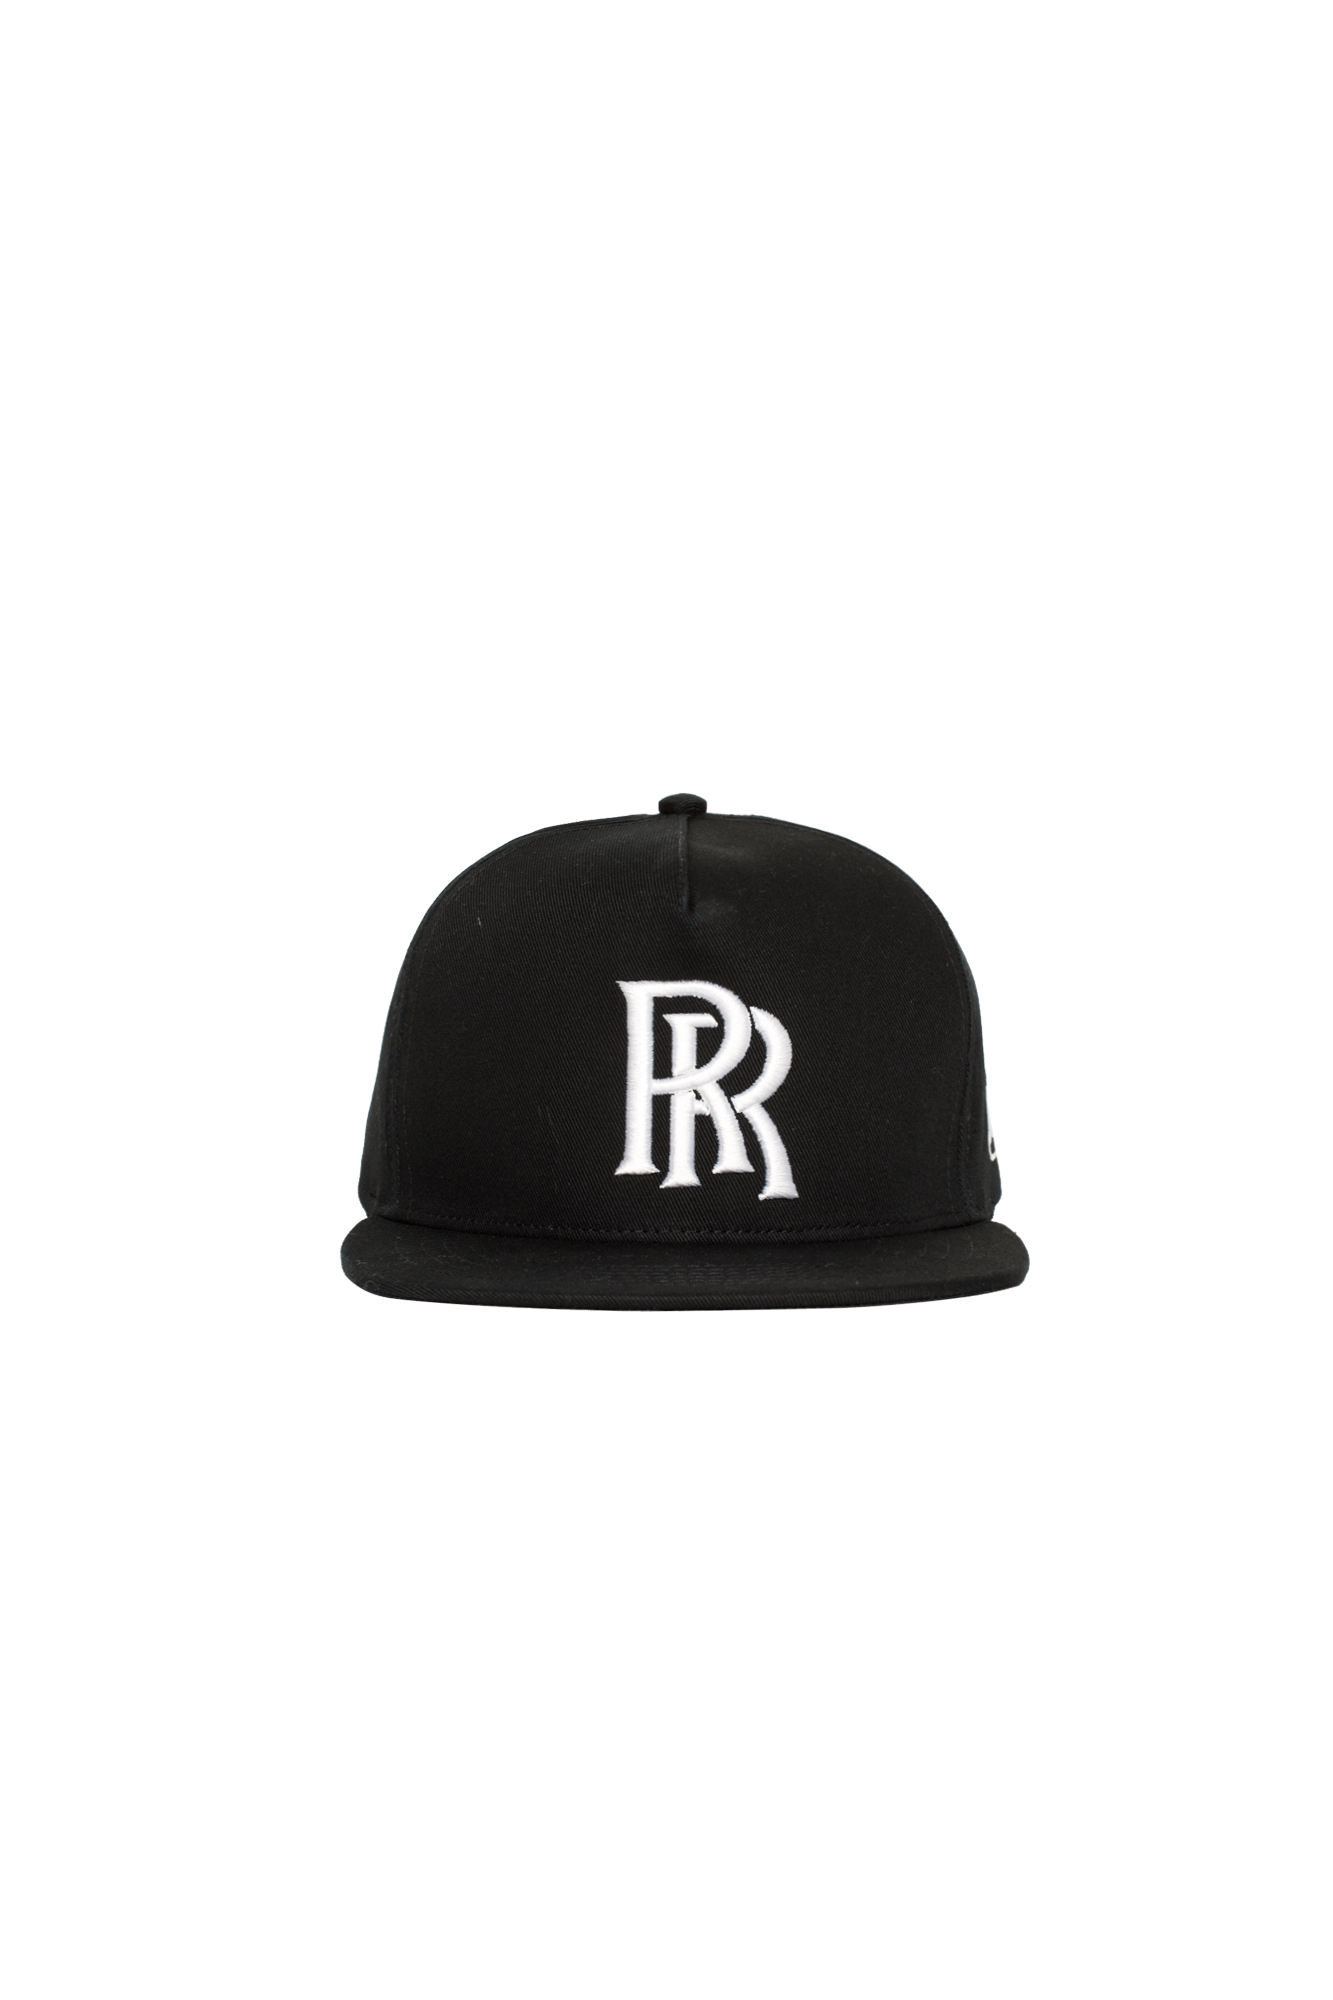 Richardson Rolls Royce Cap Black